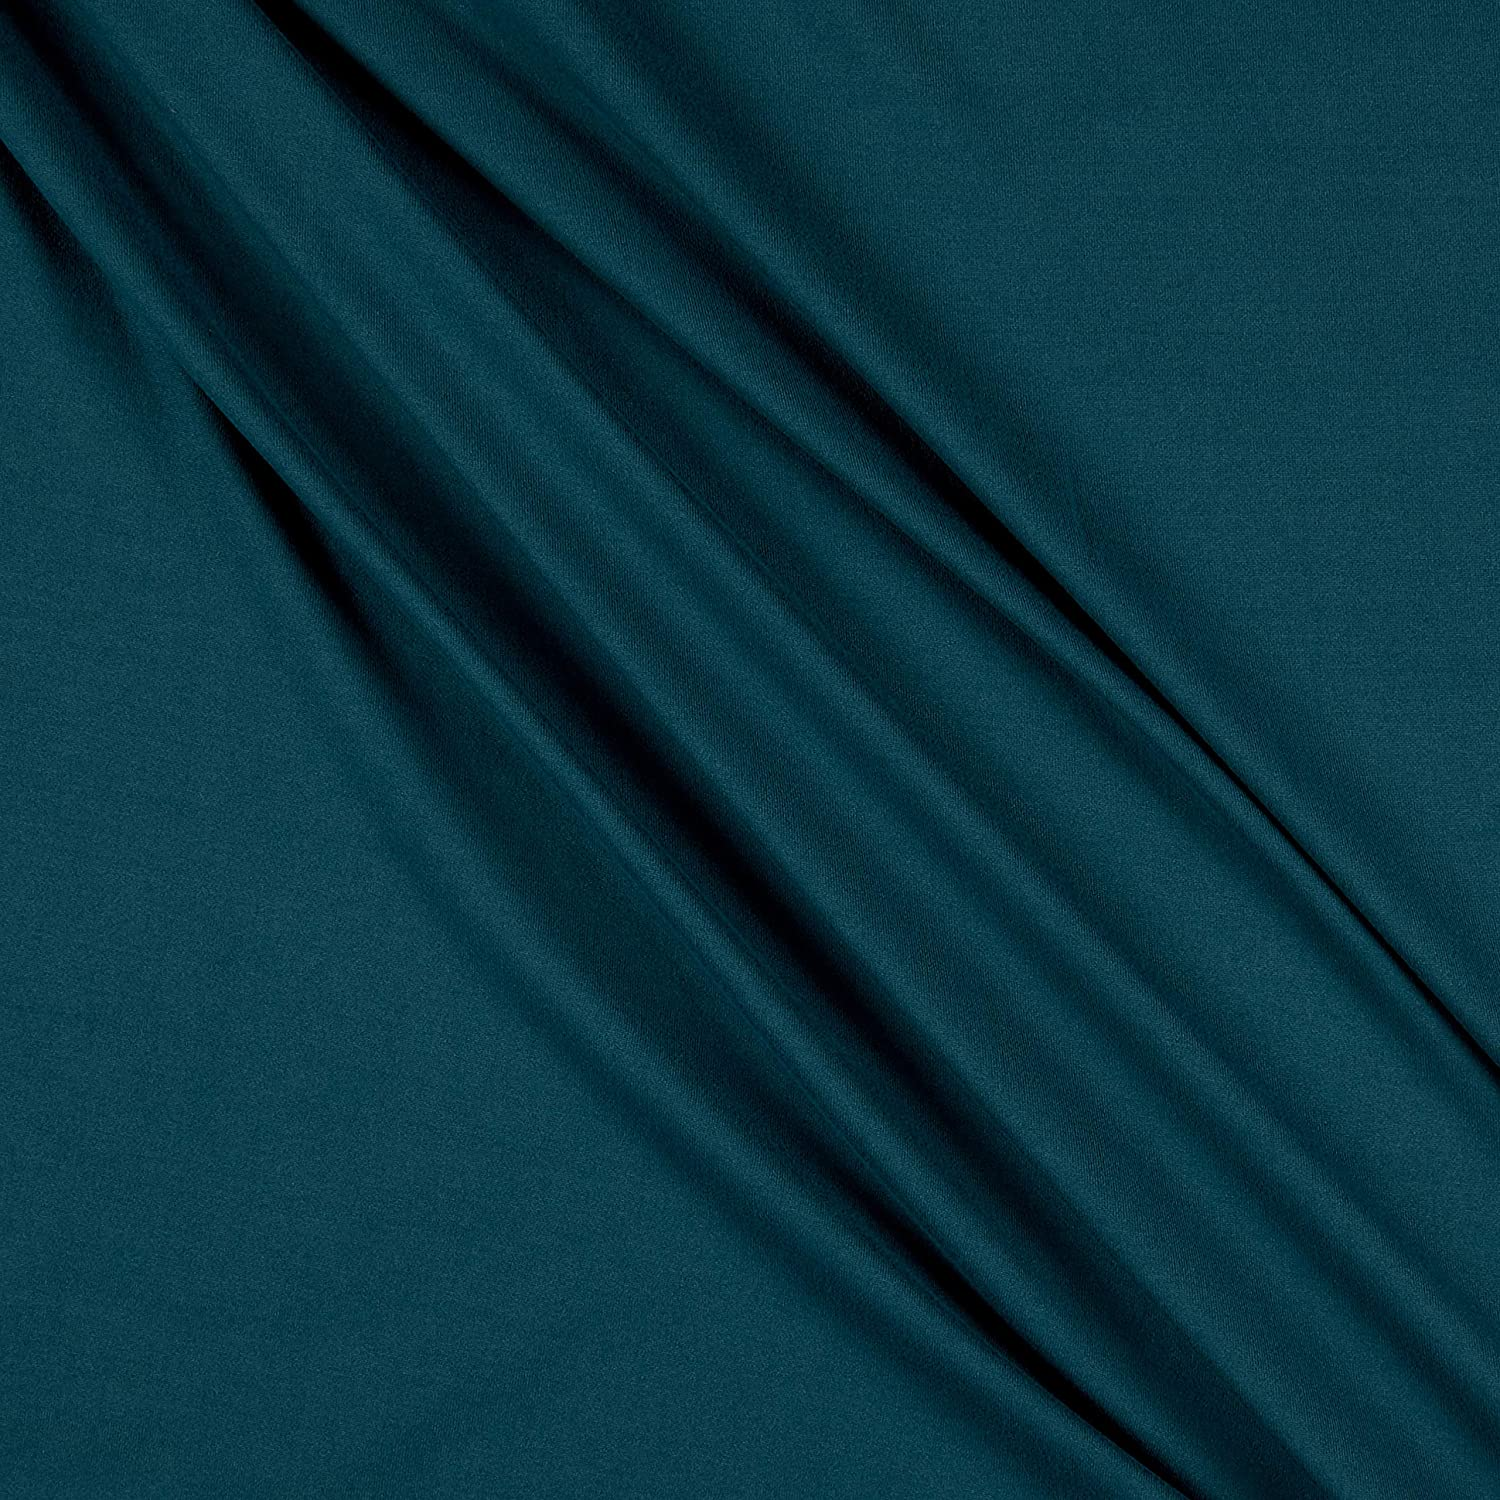 Teal Bamboo Organic Cotton Extra Soft Jersey Fabric By the Yard